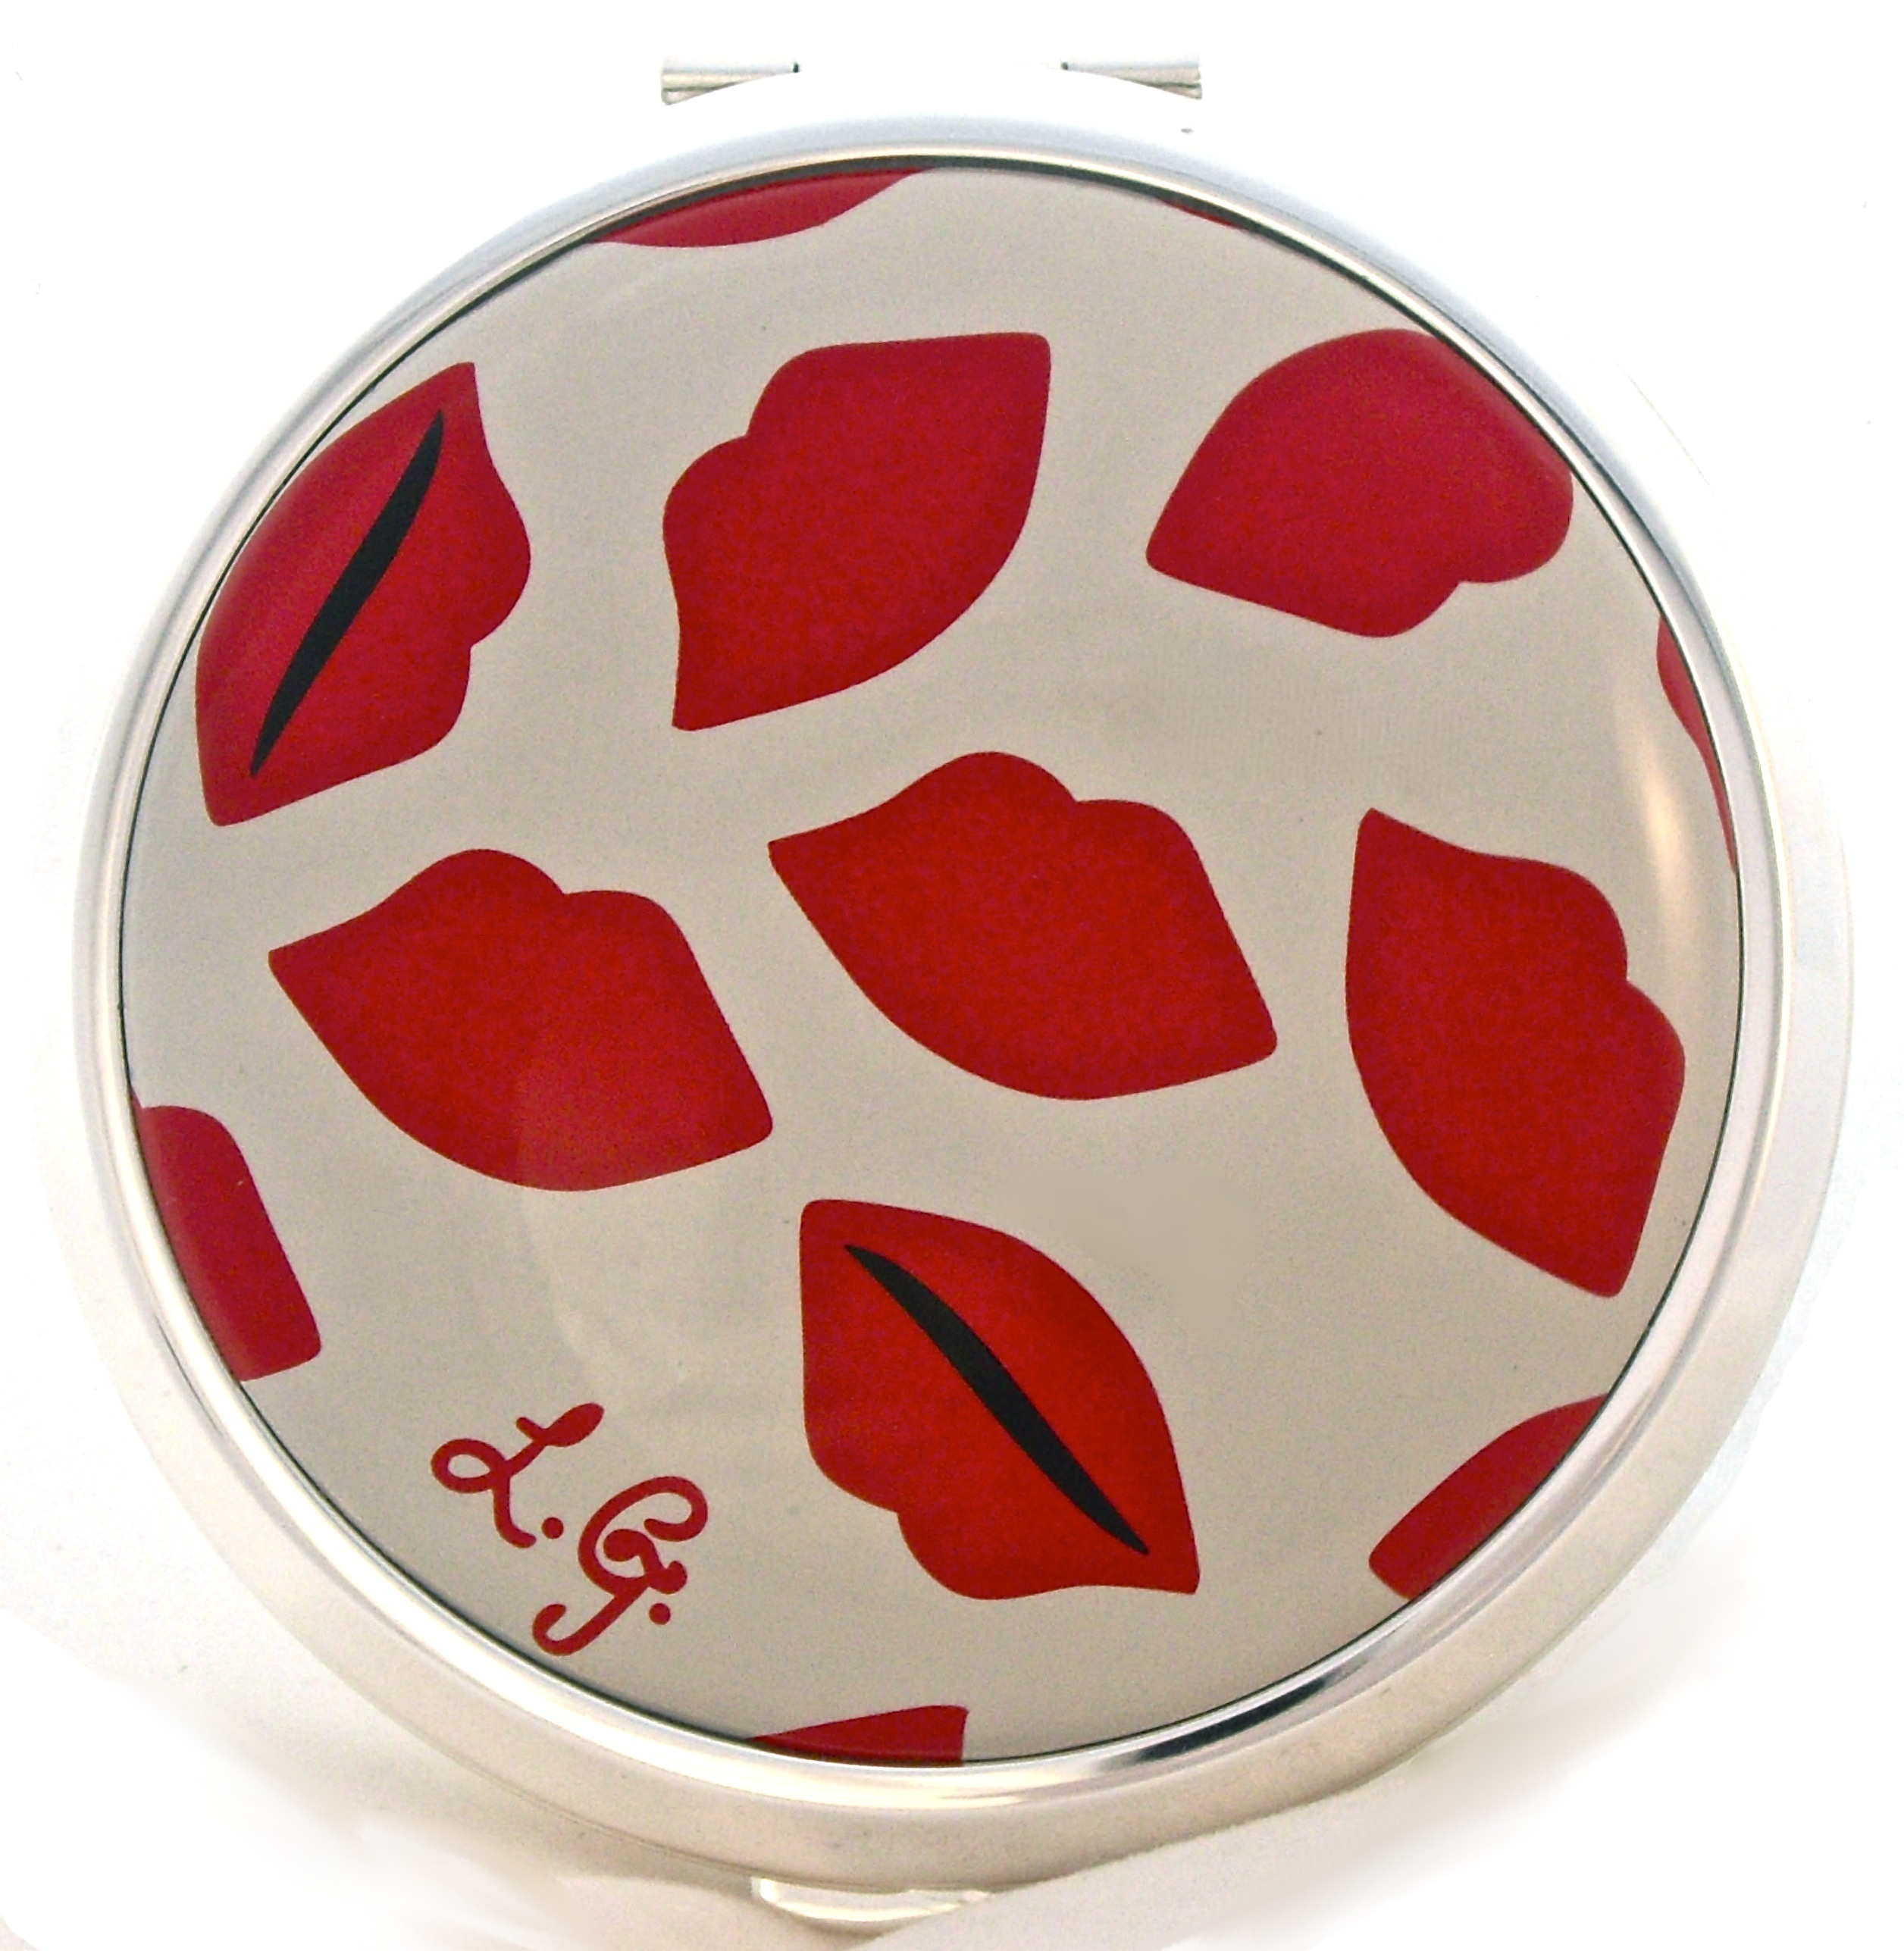 lulu guinness lips powder compact